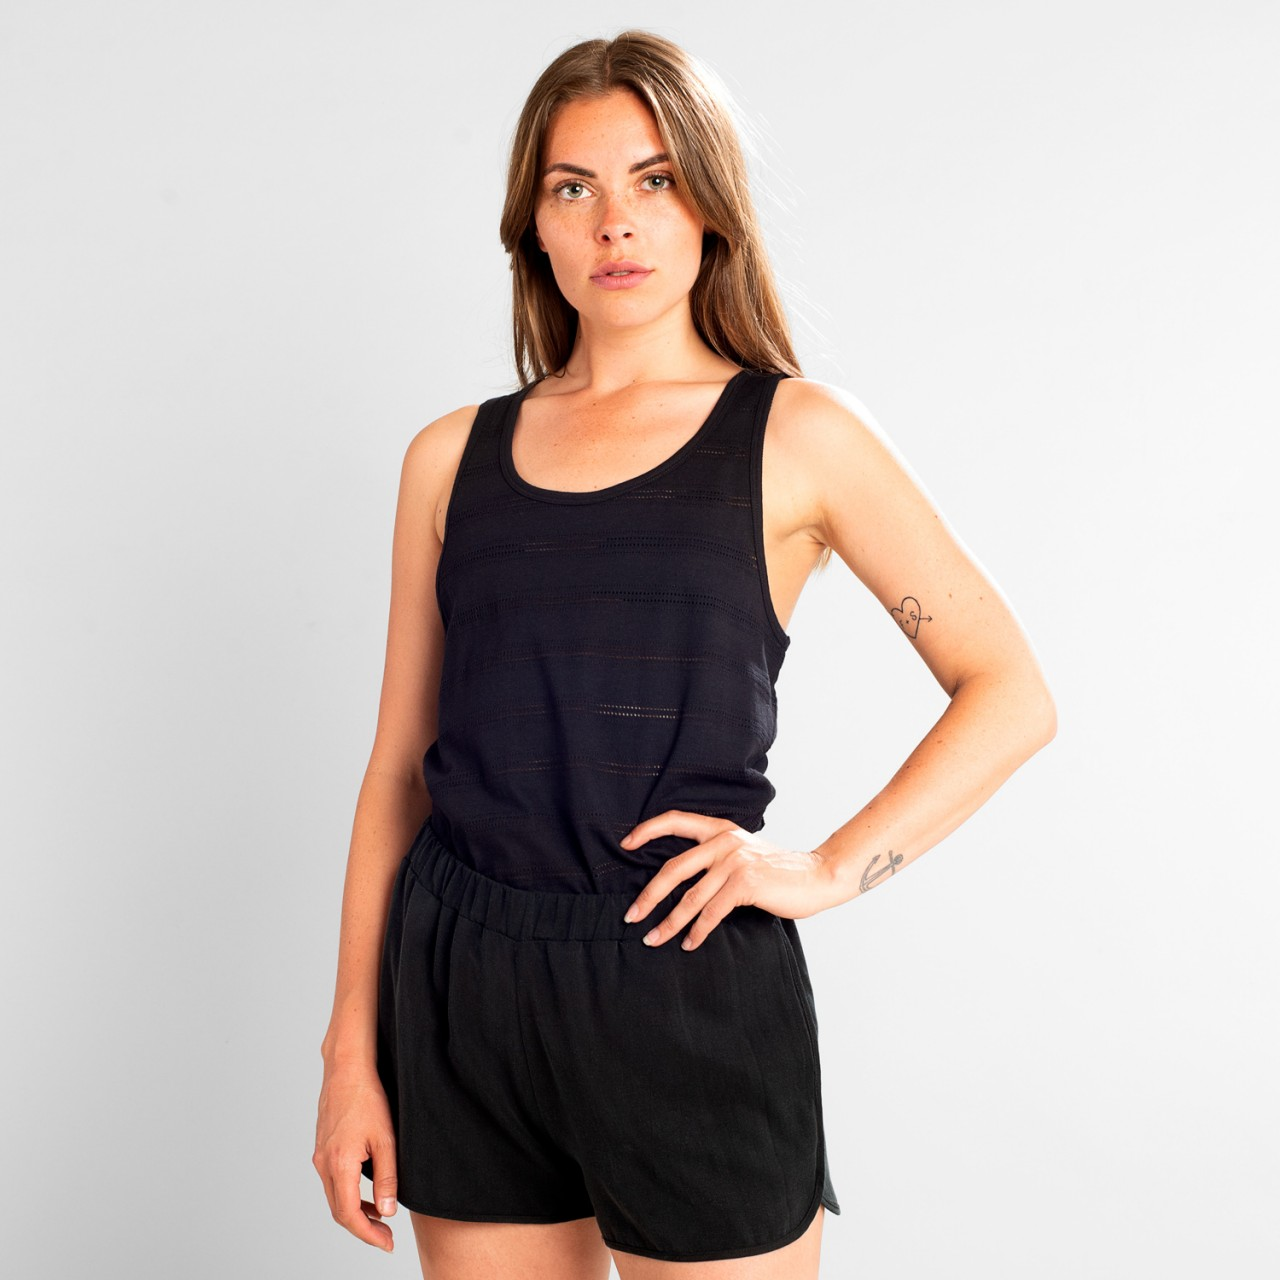 Top Nora Lace Jersey Black